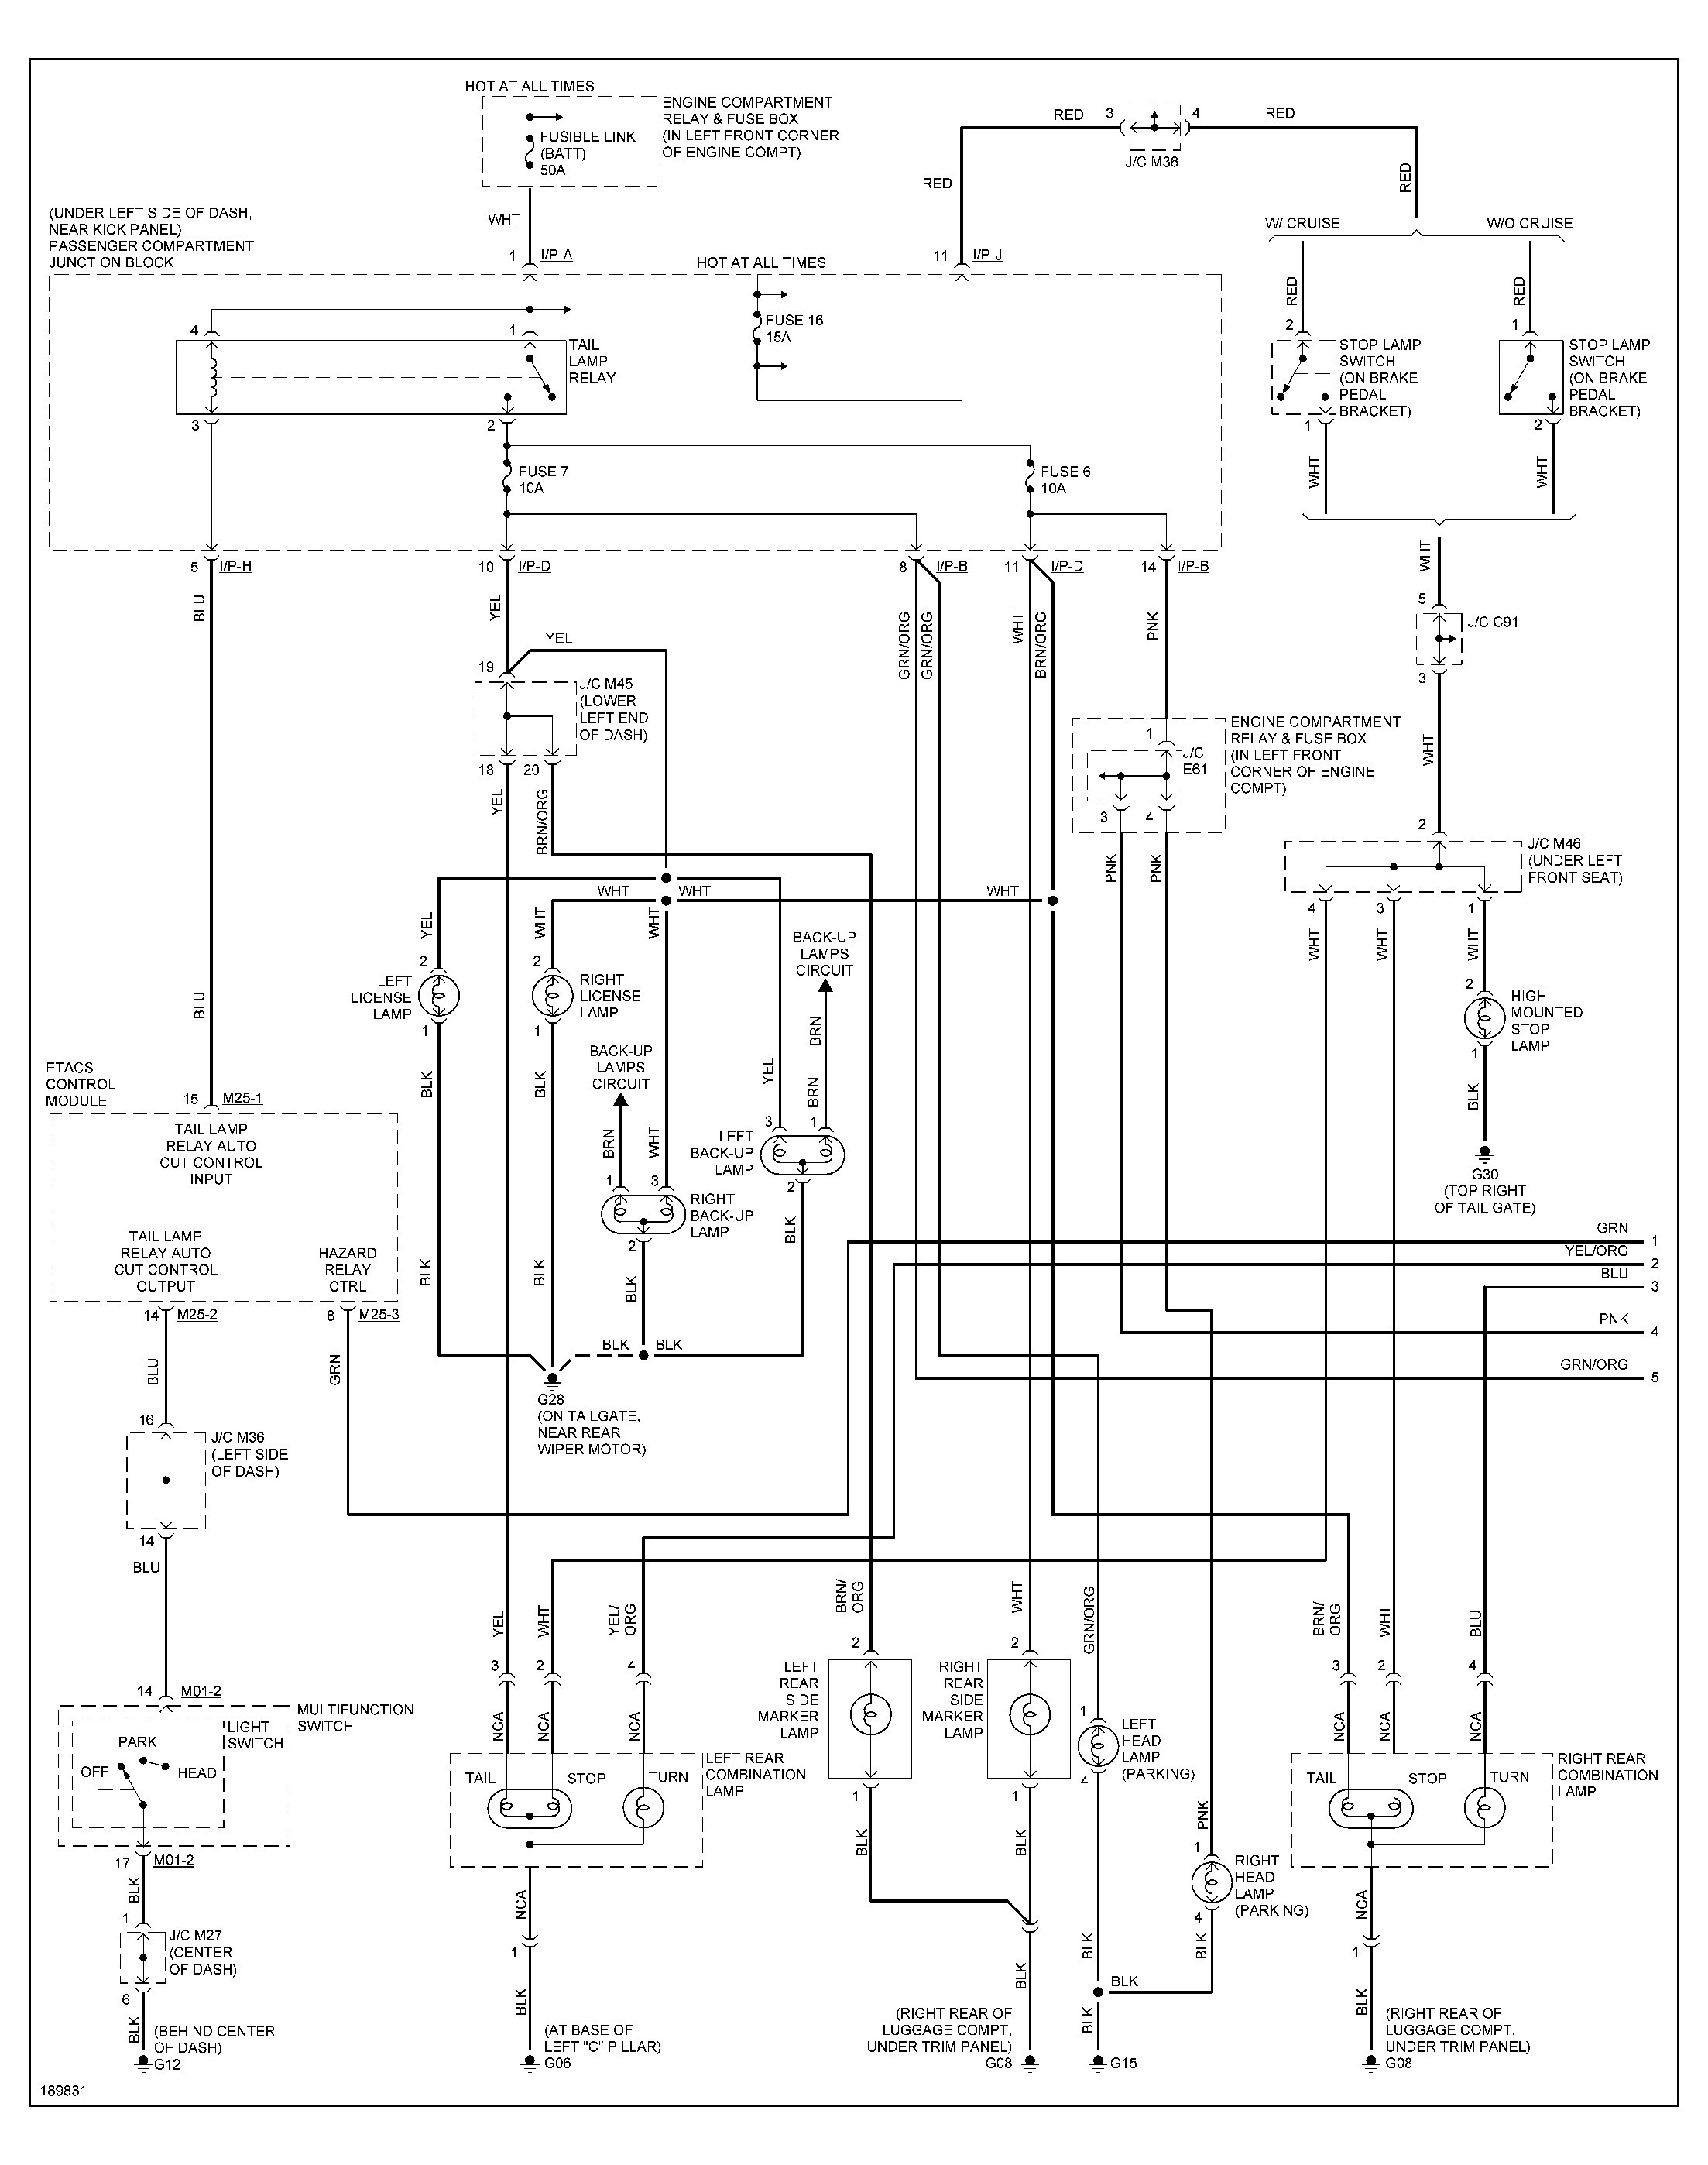 1997 hyundai elantra engine diagram